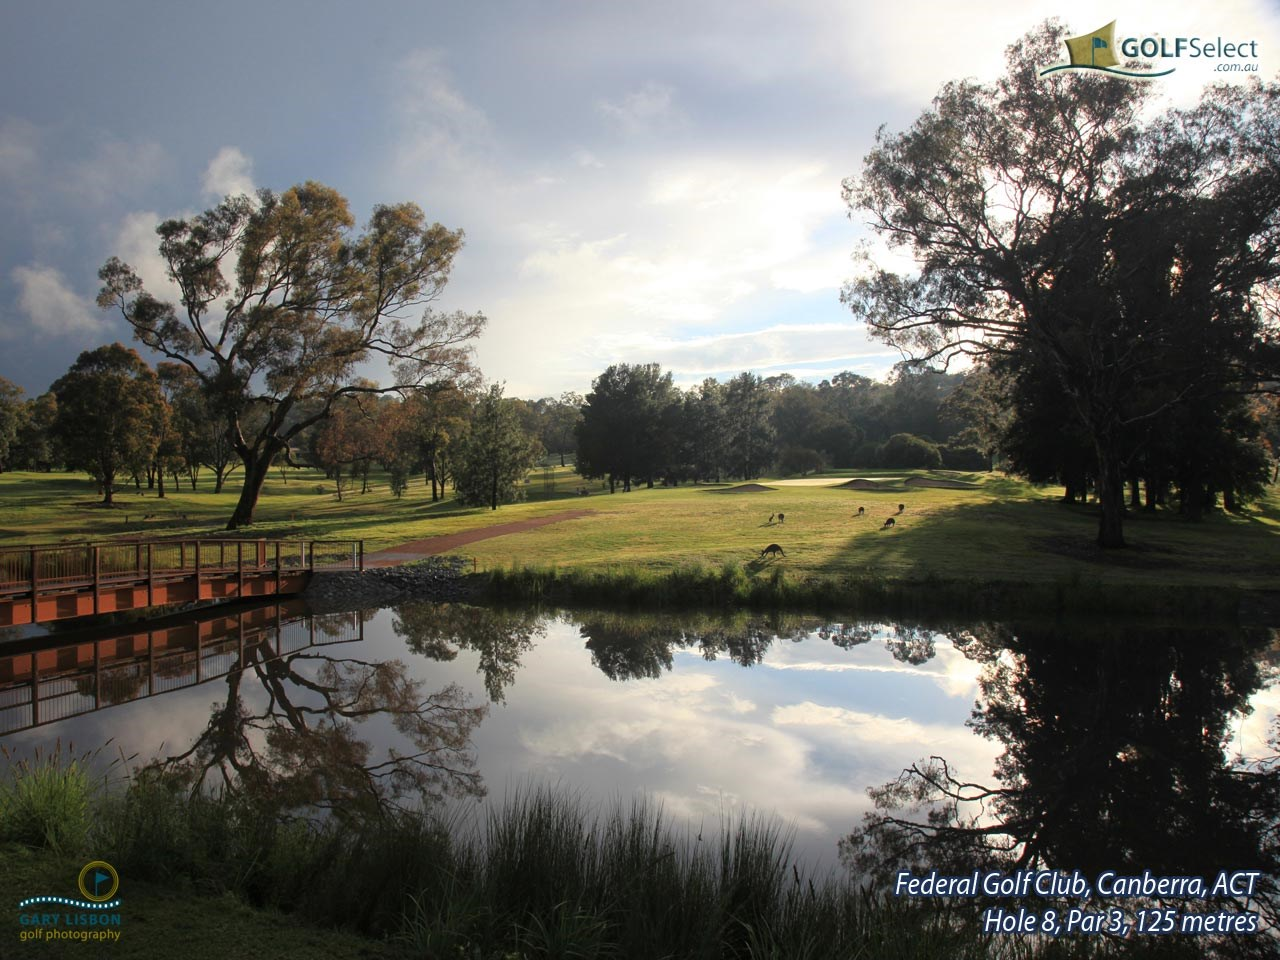 Federal Golf Club Hole 8, Par 3, 125 metres